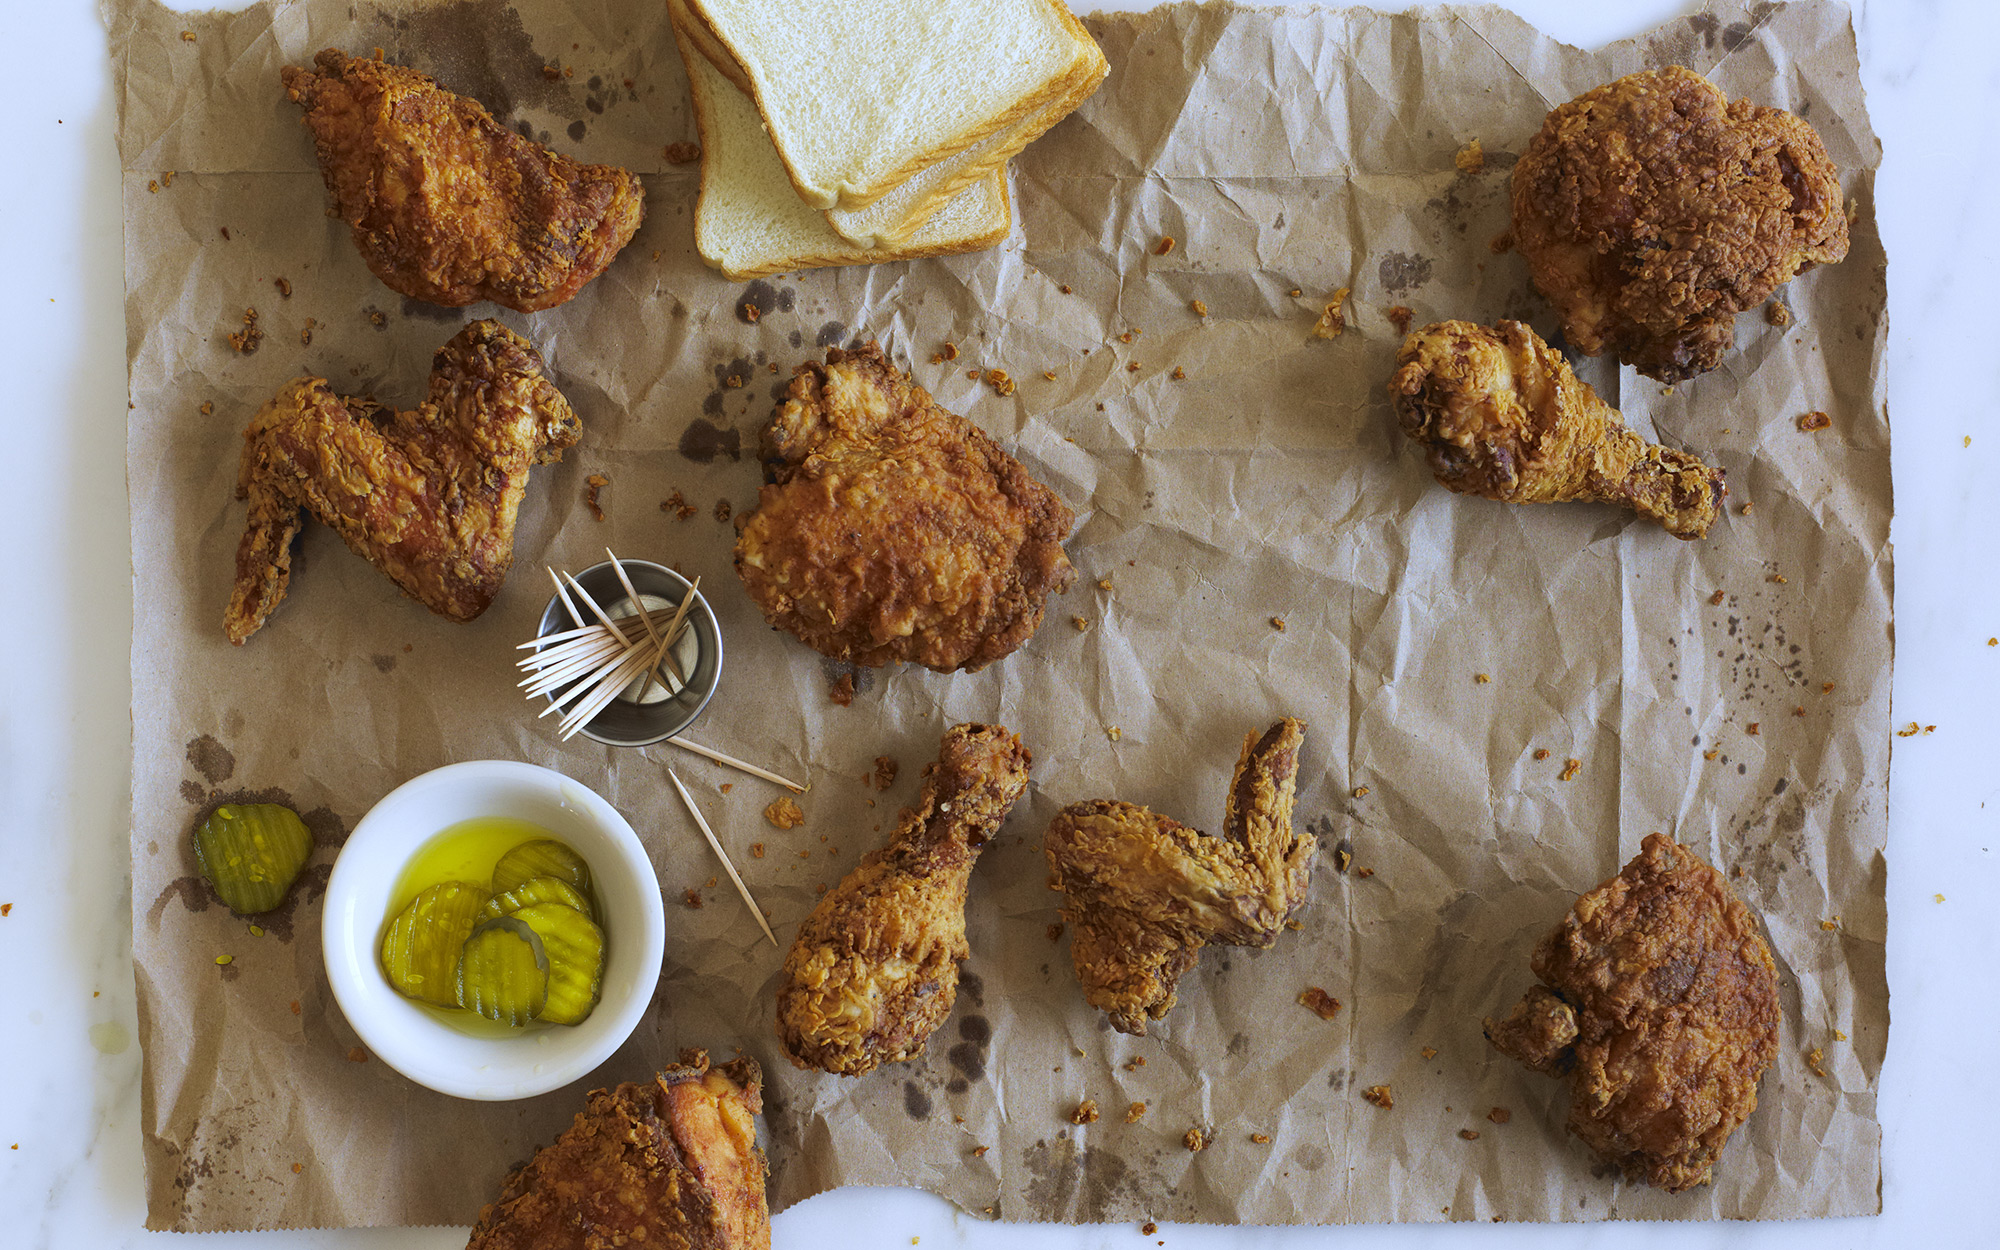 Fried chicken with pickles.